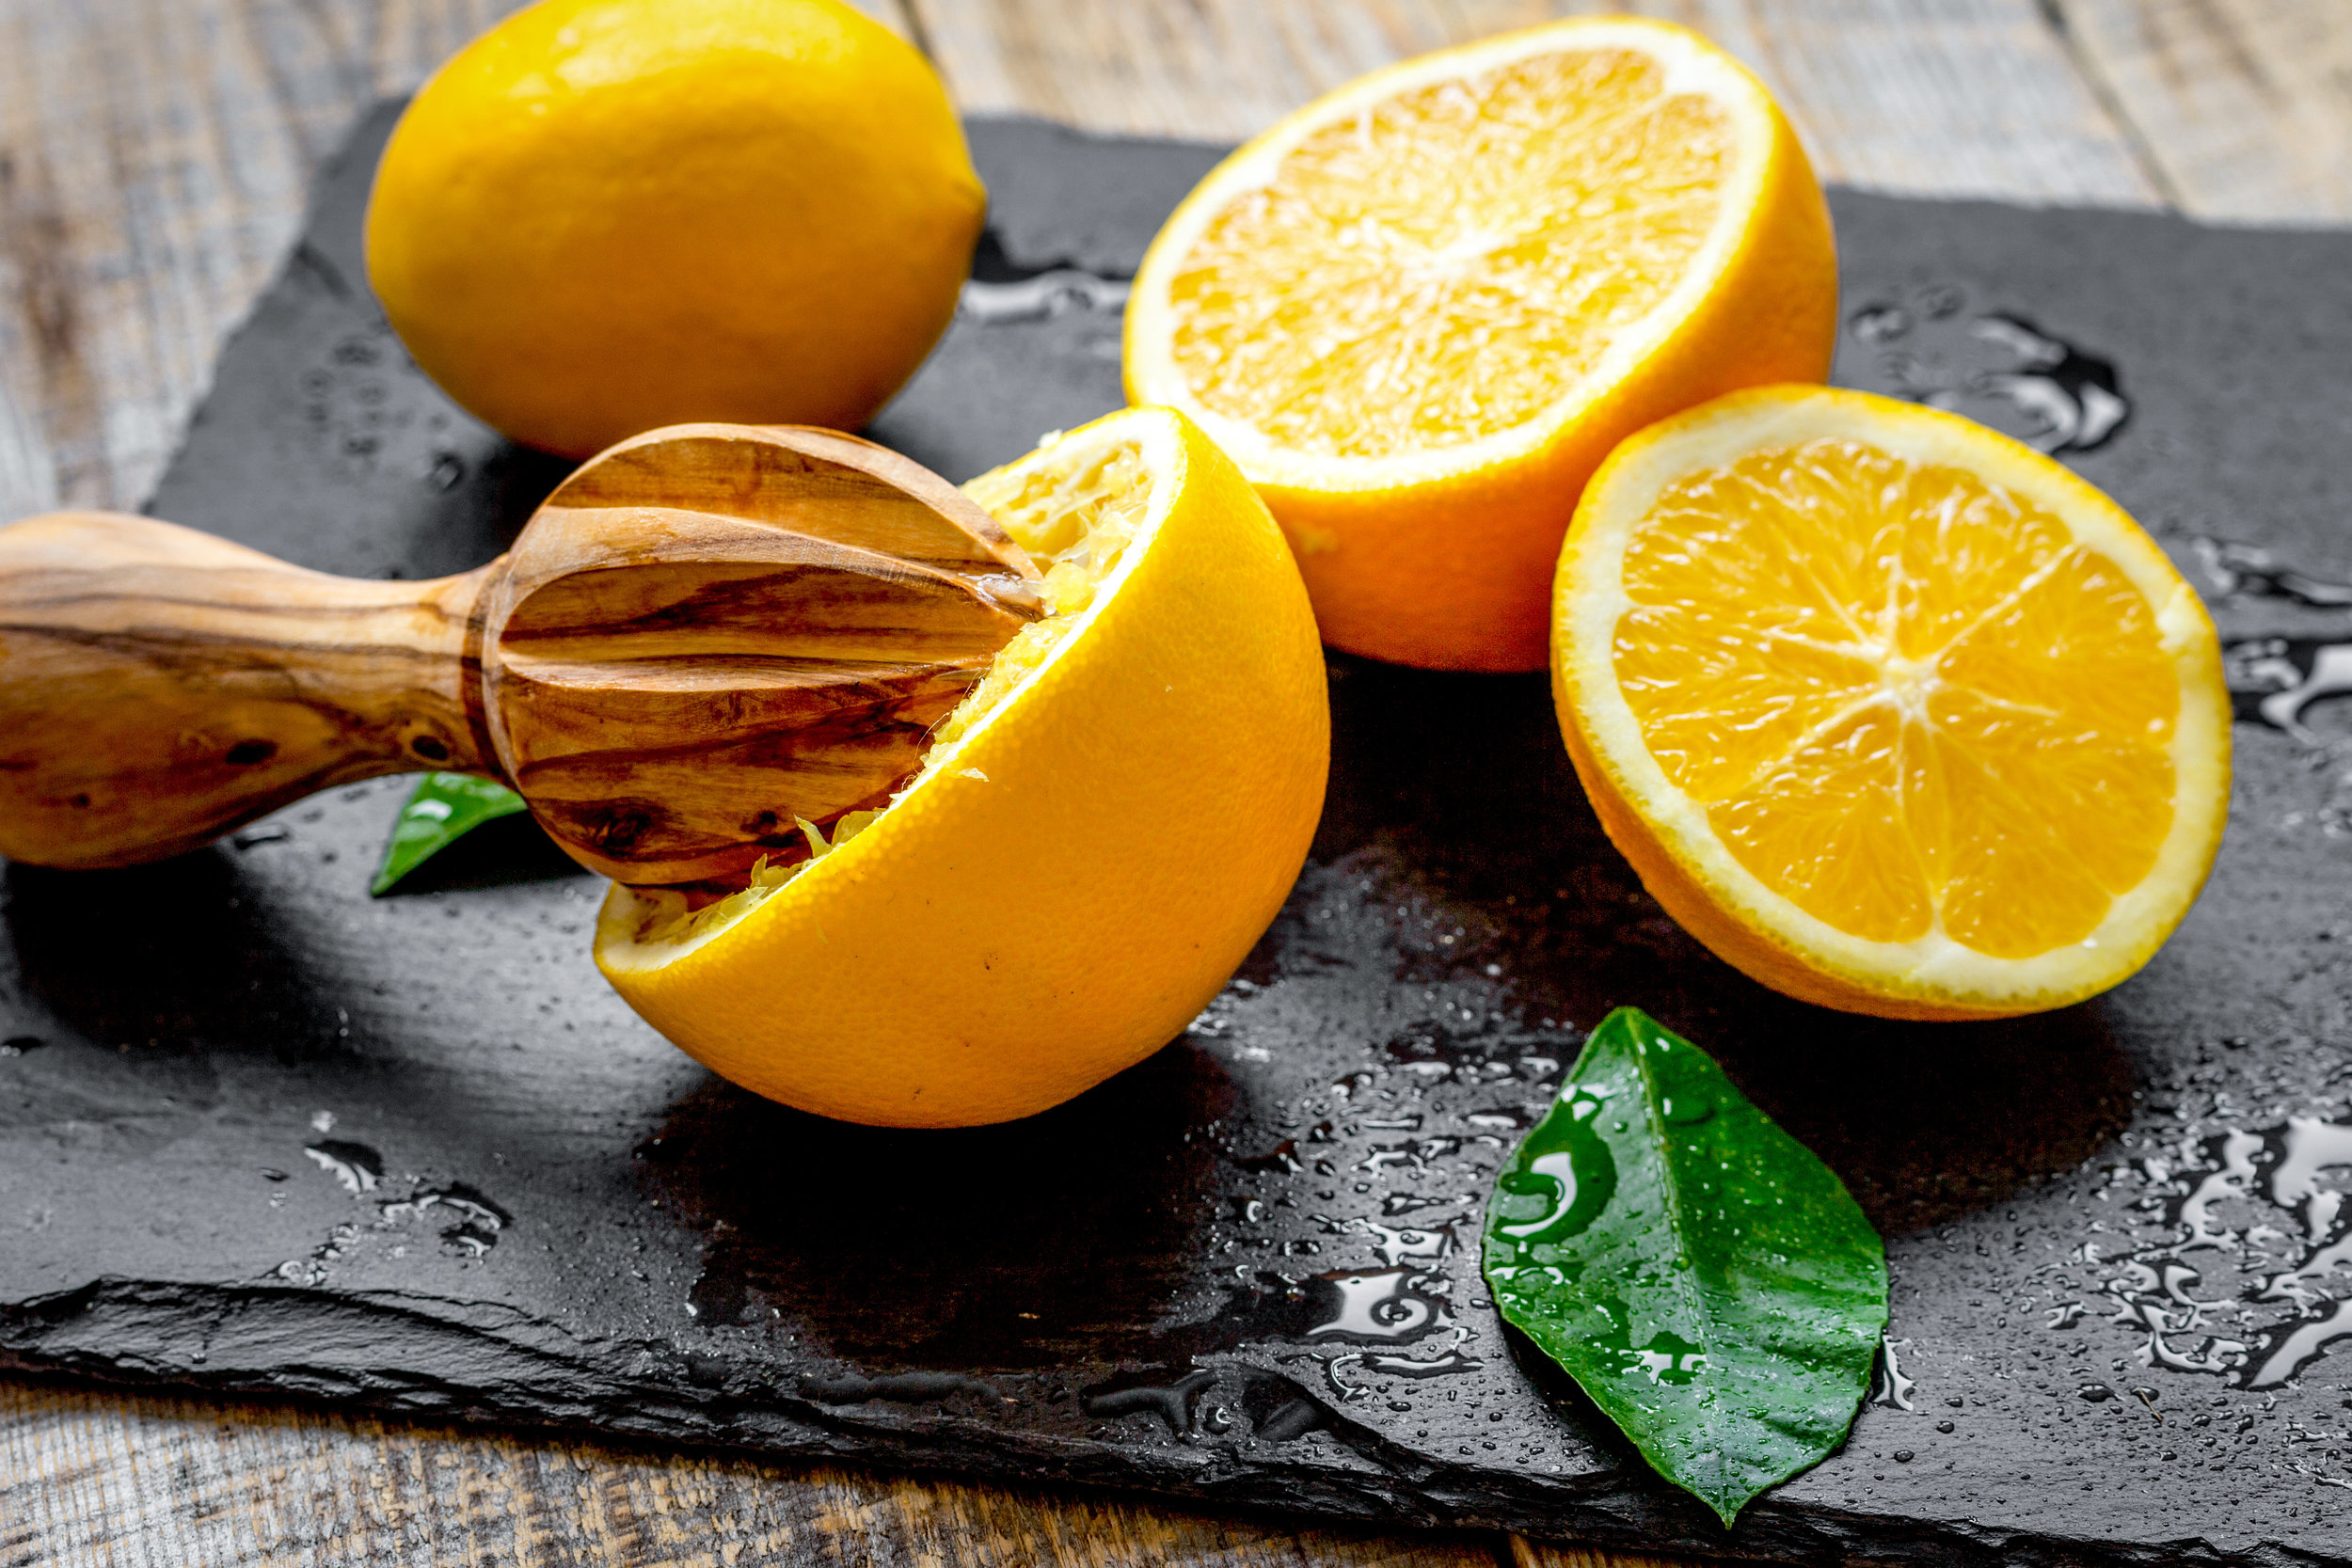 Spritz It! - Use one part juice from lemons, limes, oranges or watermelon to four parts seltzer or sparkling water for a refreshing, reduced calorie drink.